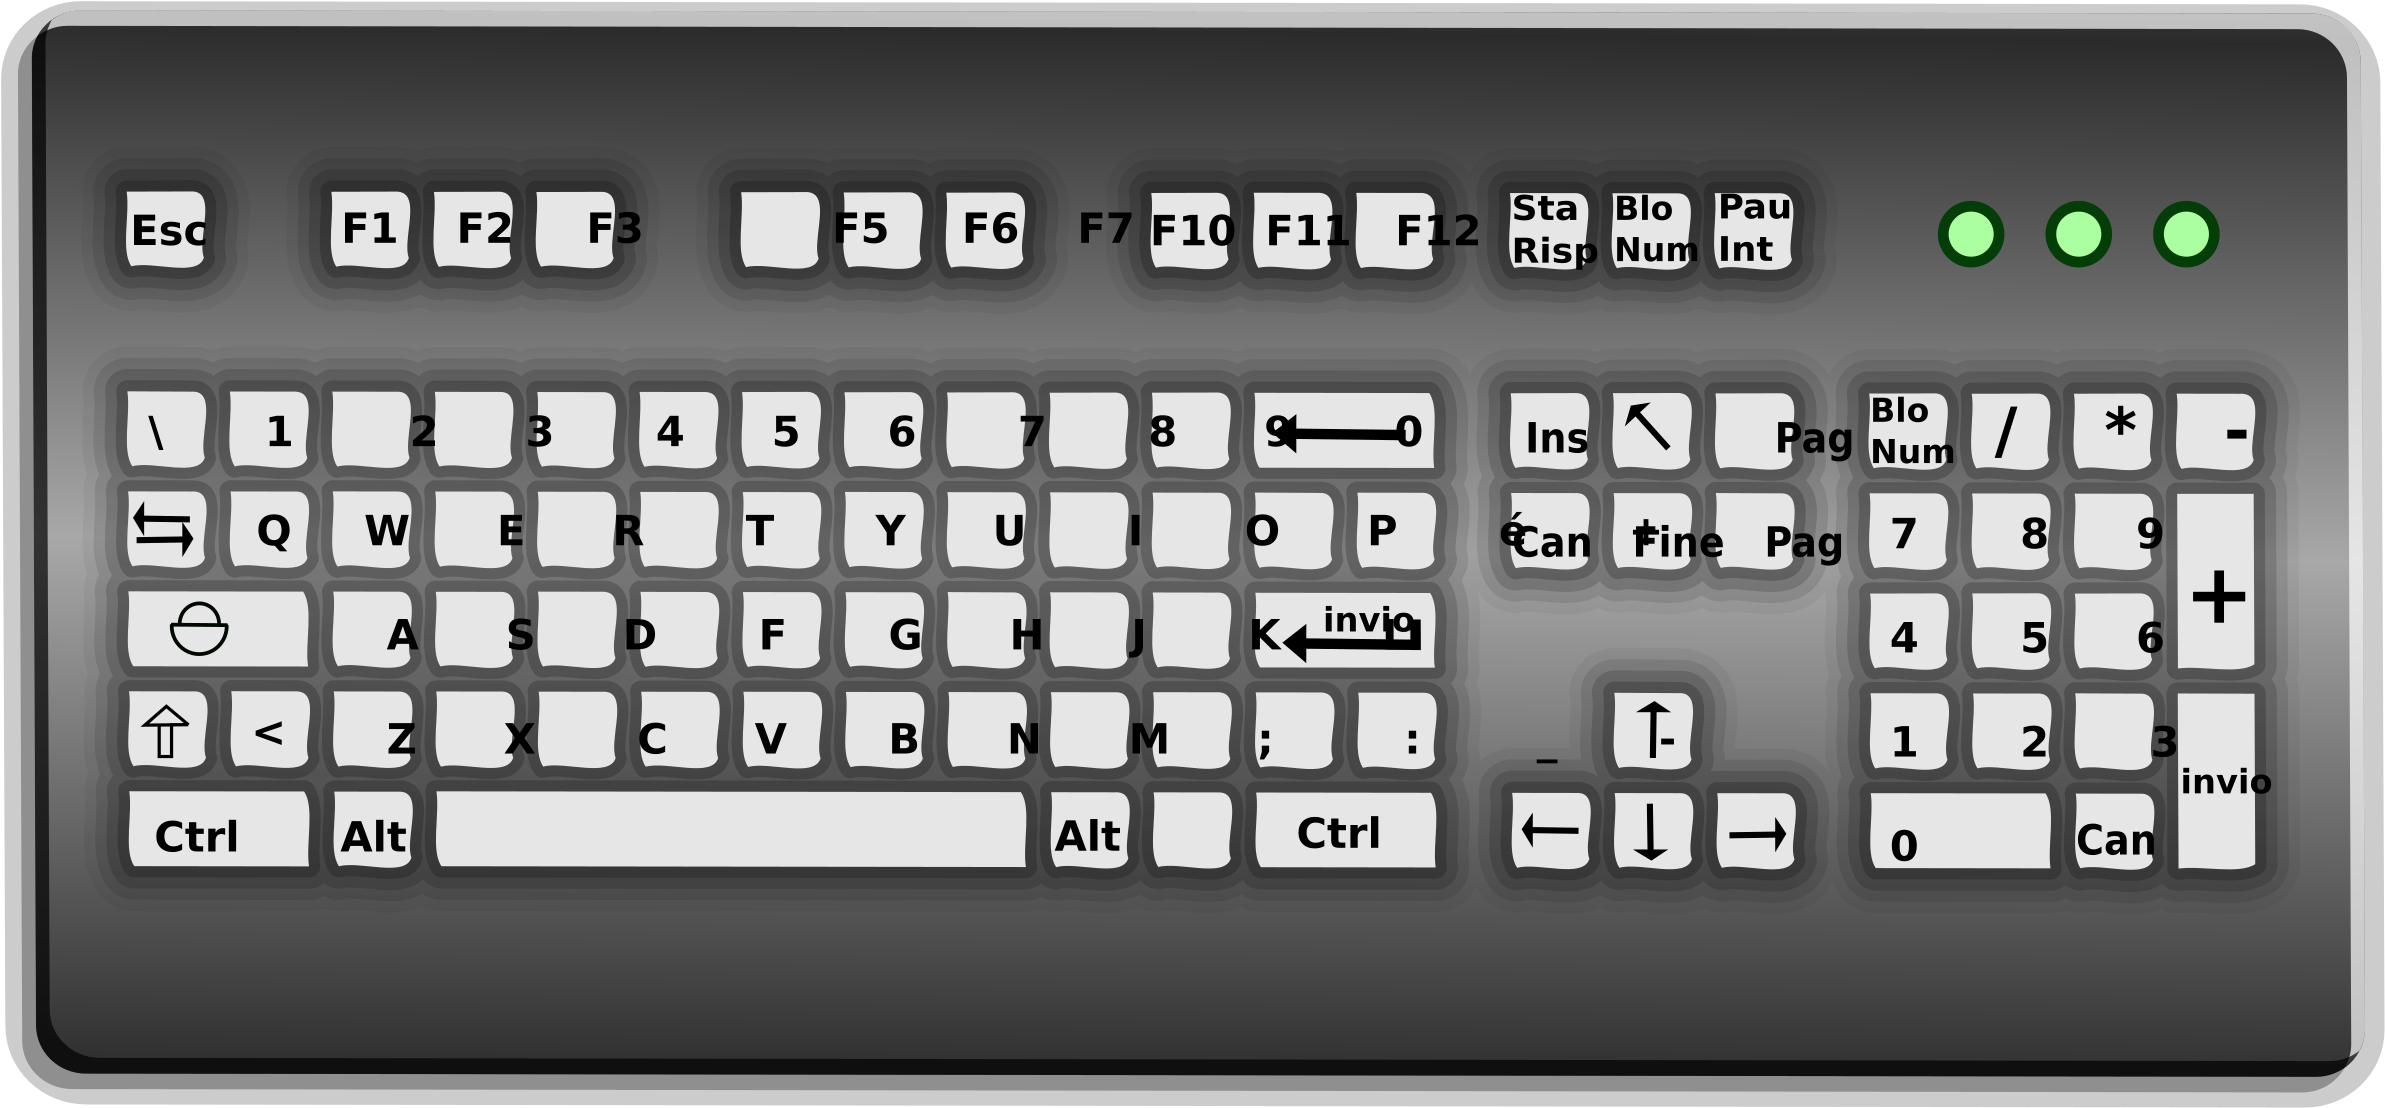 Download Keyboard Graphic Library Downlo 1902558 Png Images Pngio